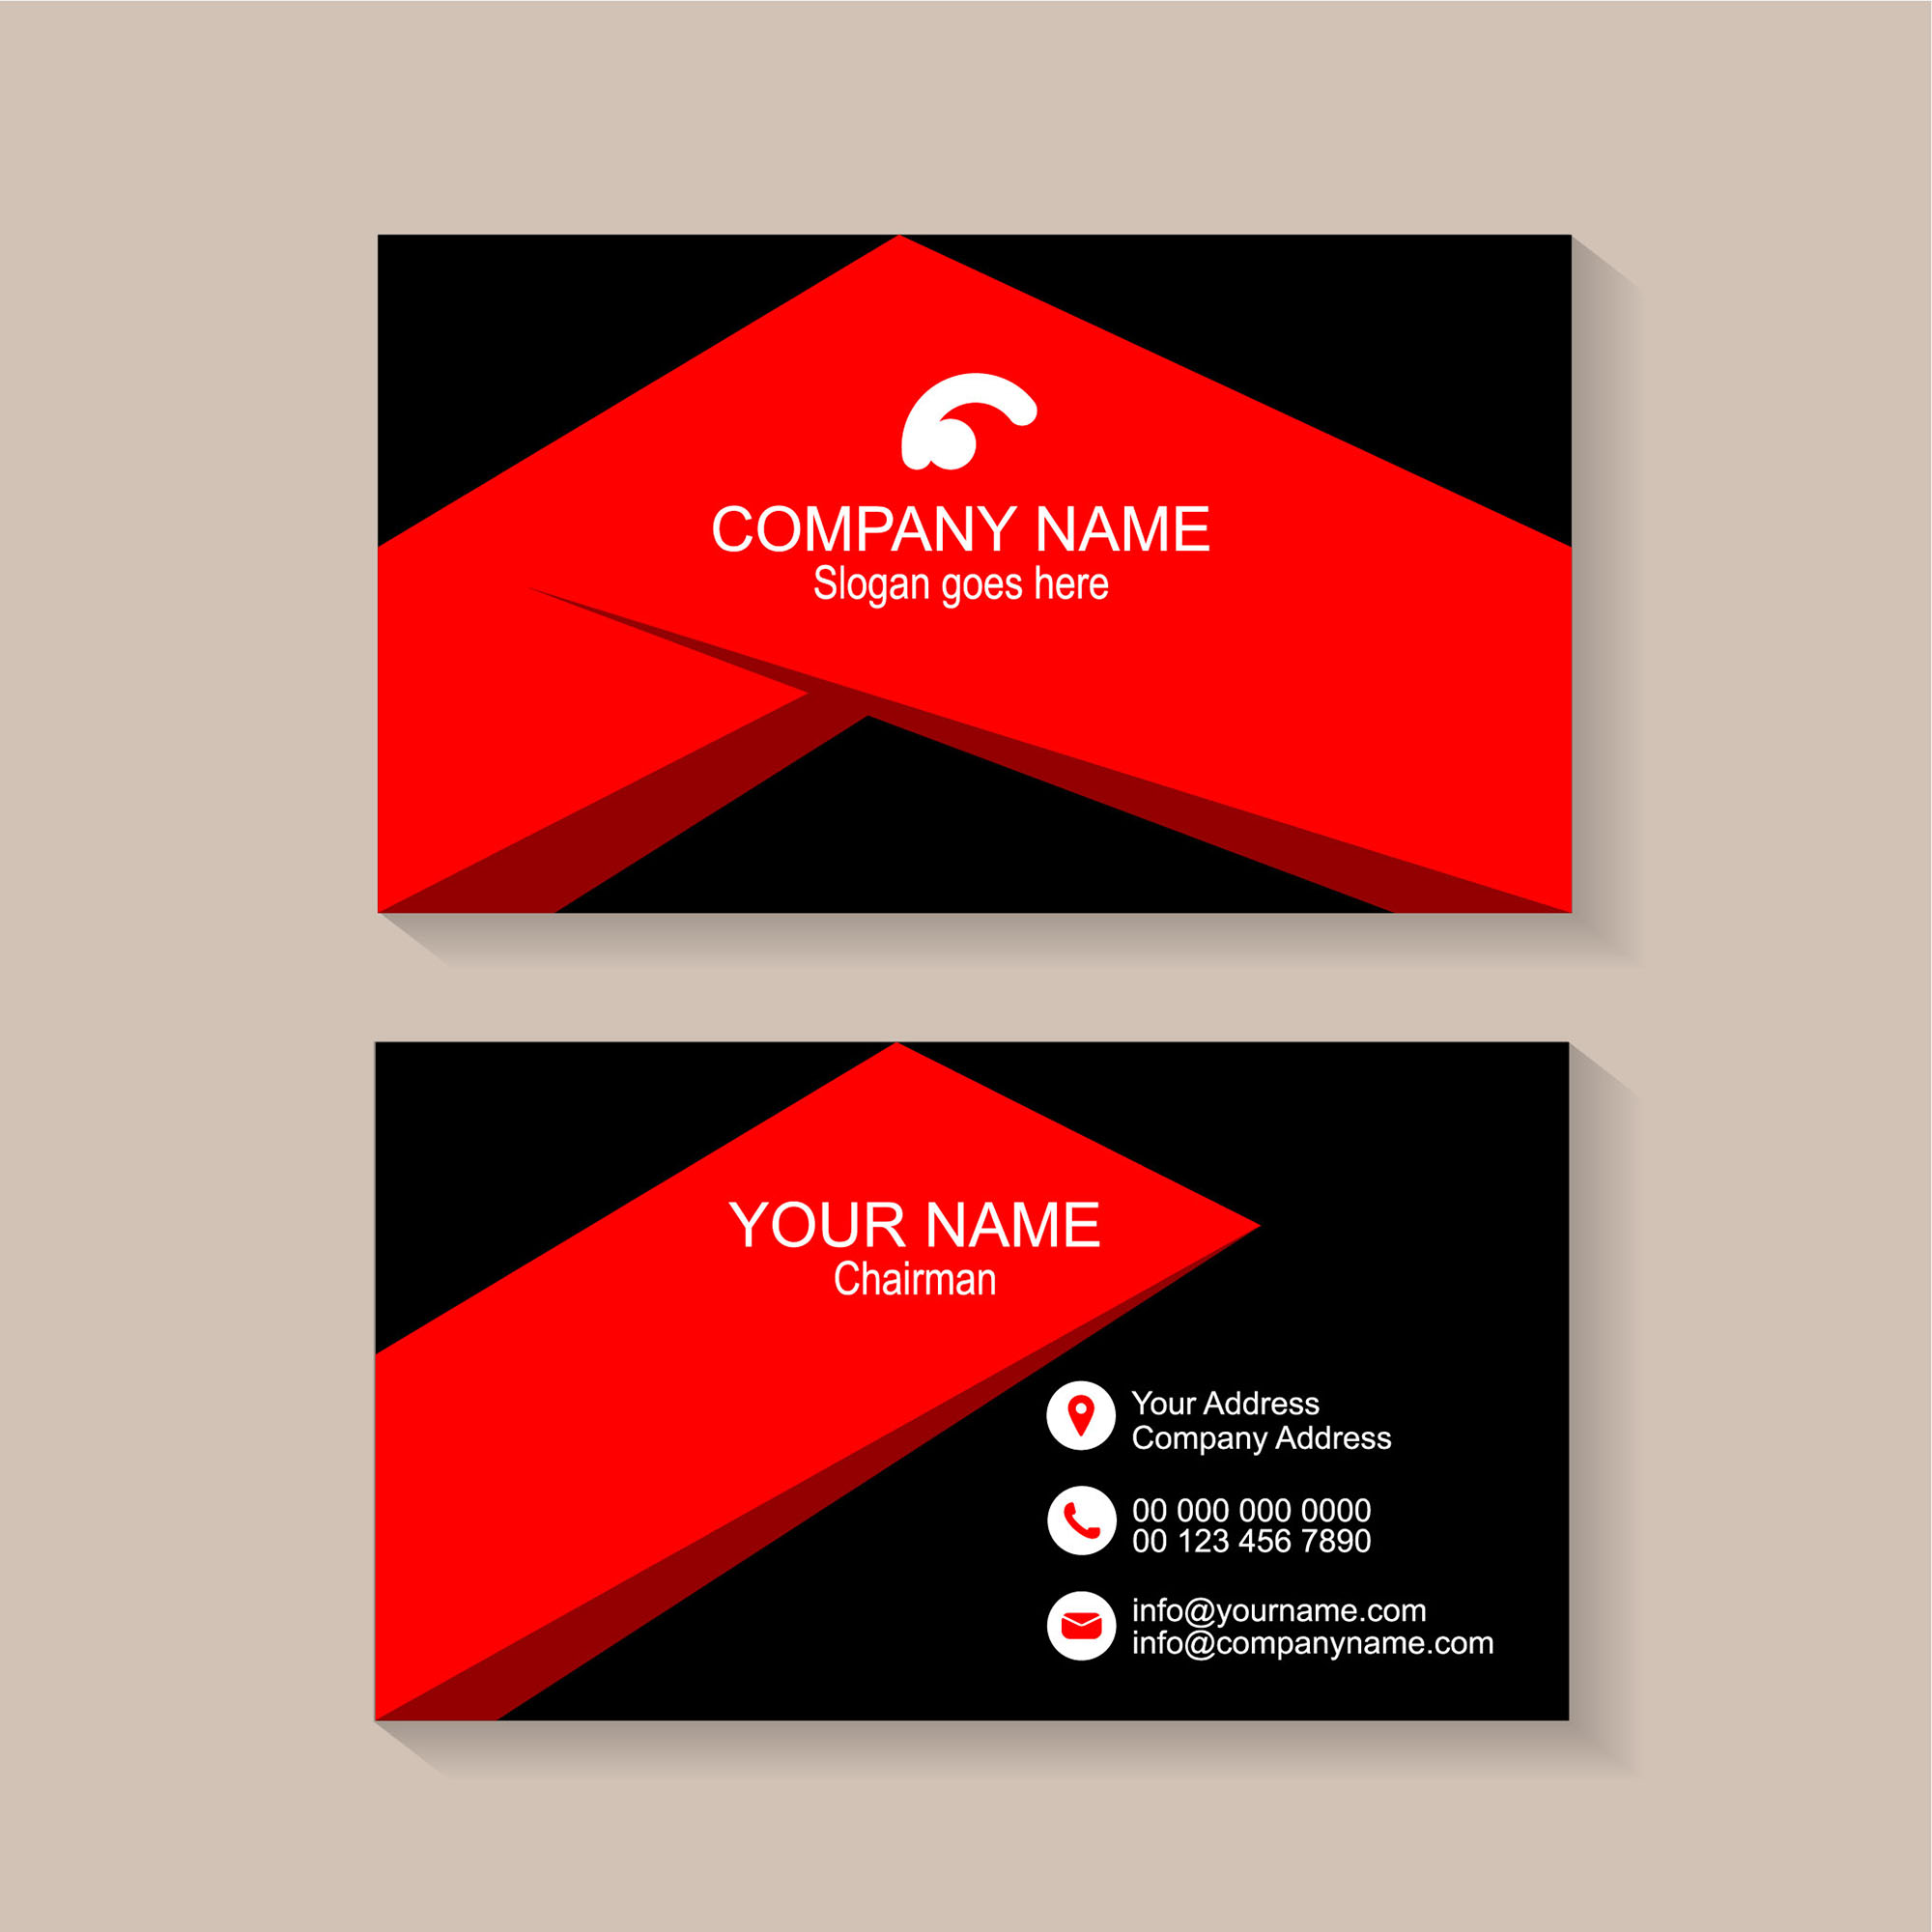 Business card template design free download wisxi business card business cards business card design business card template design templates flashek Images